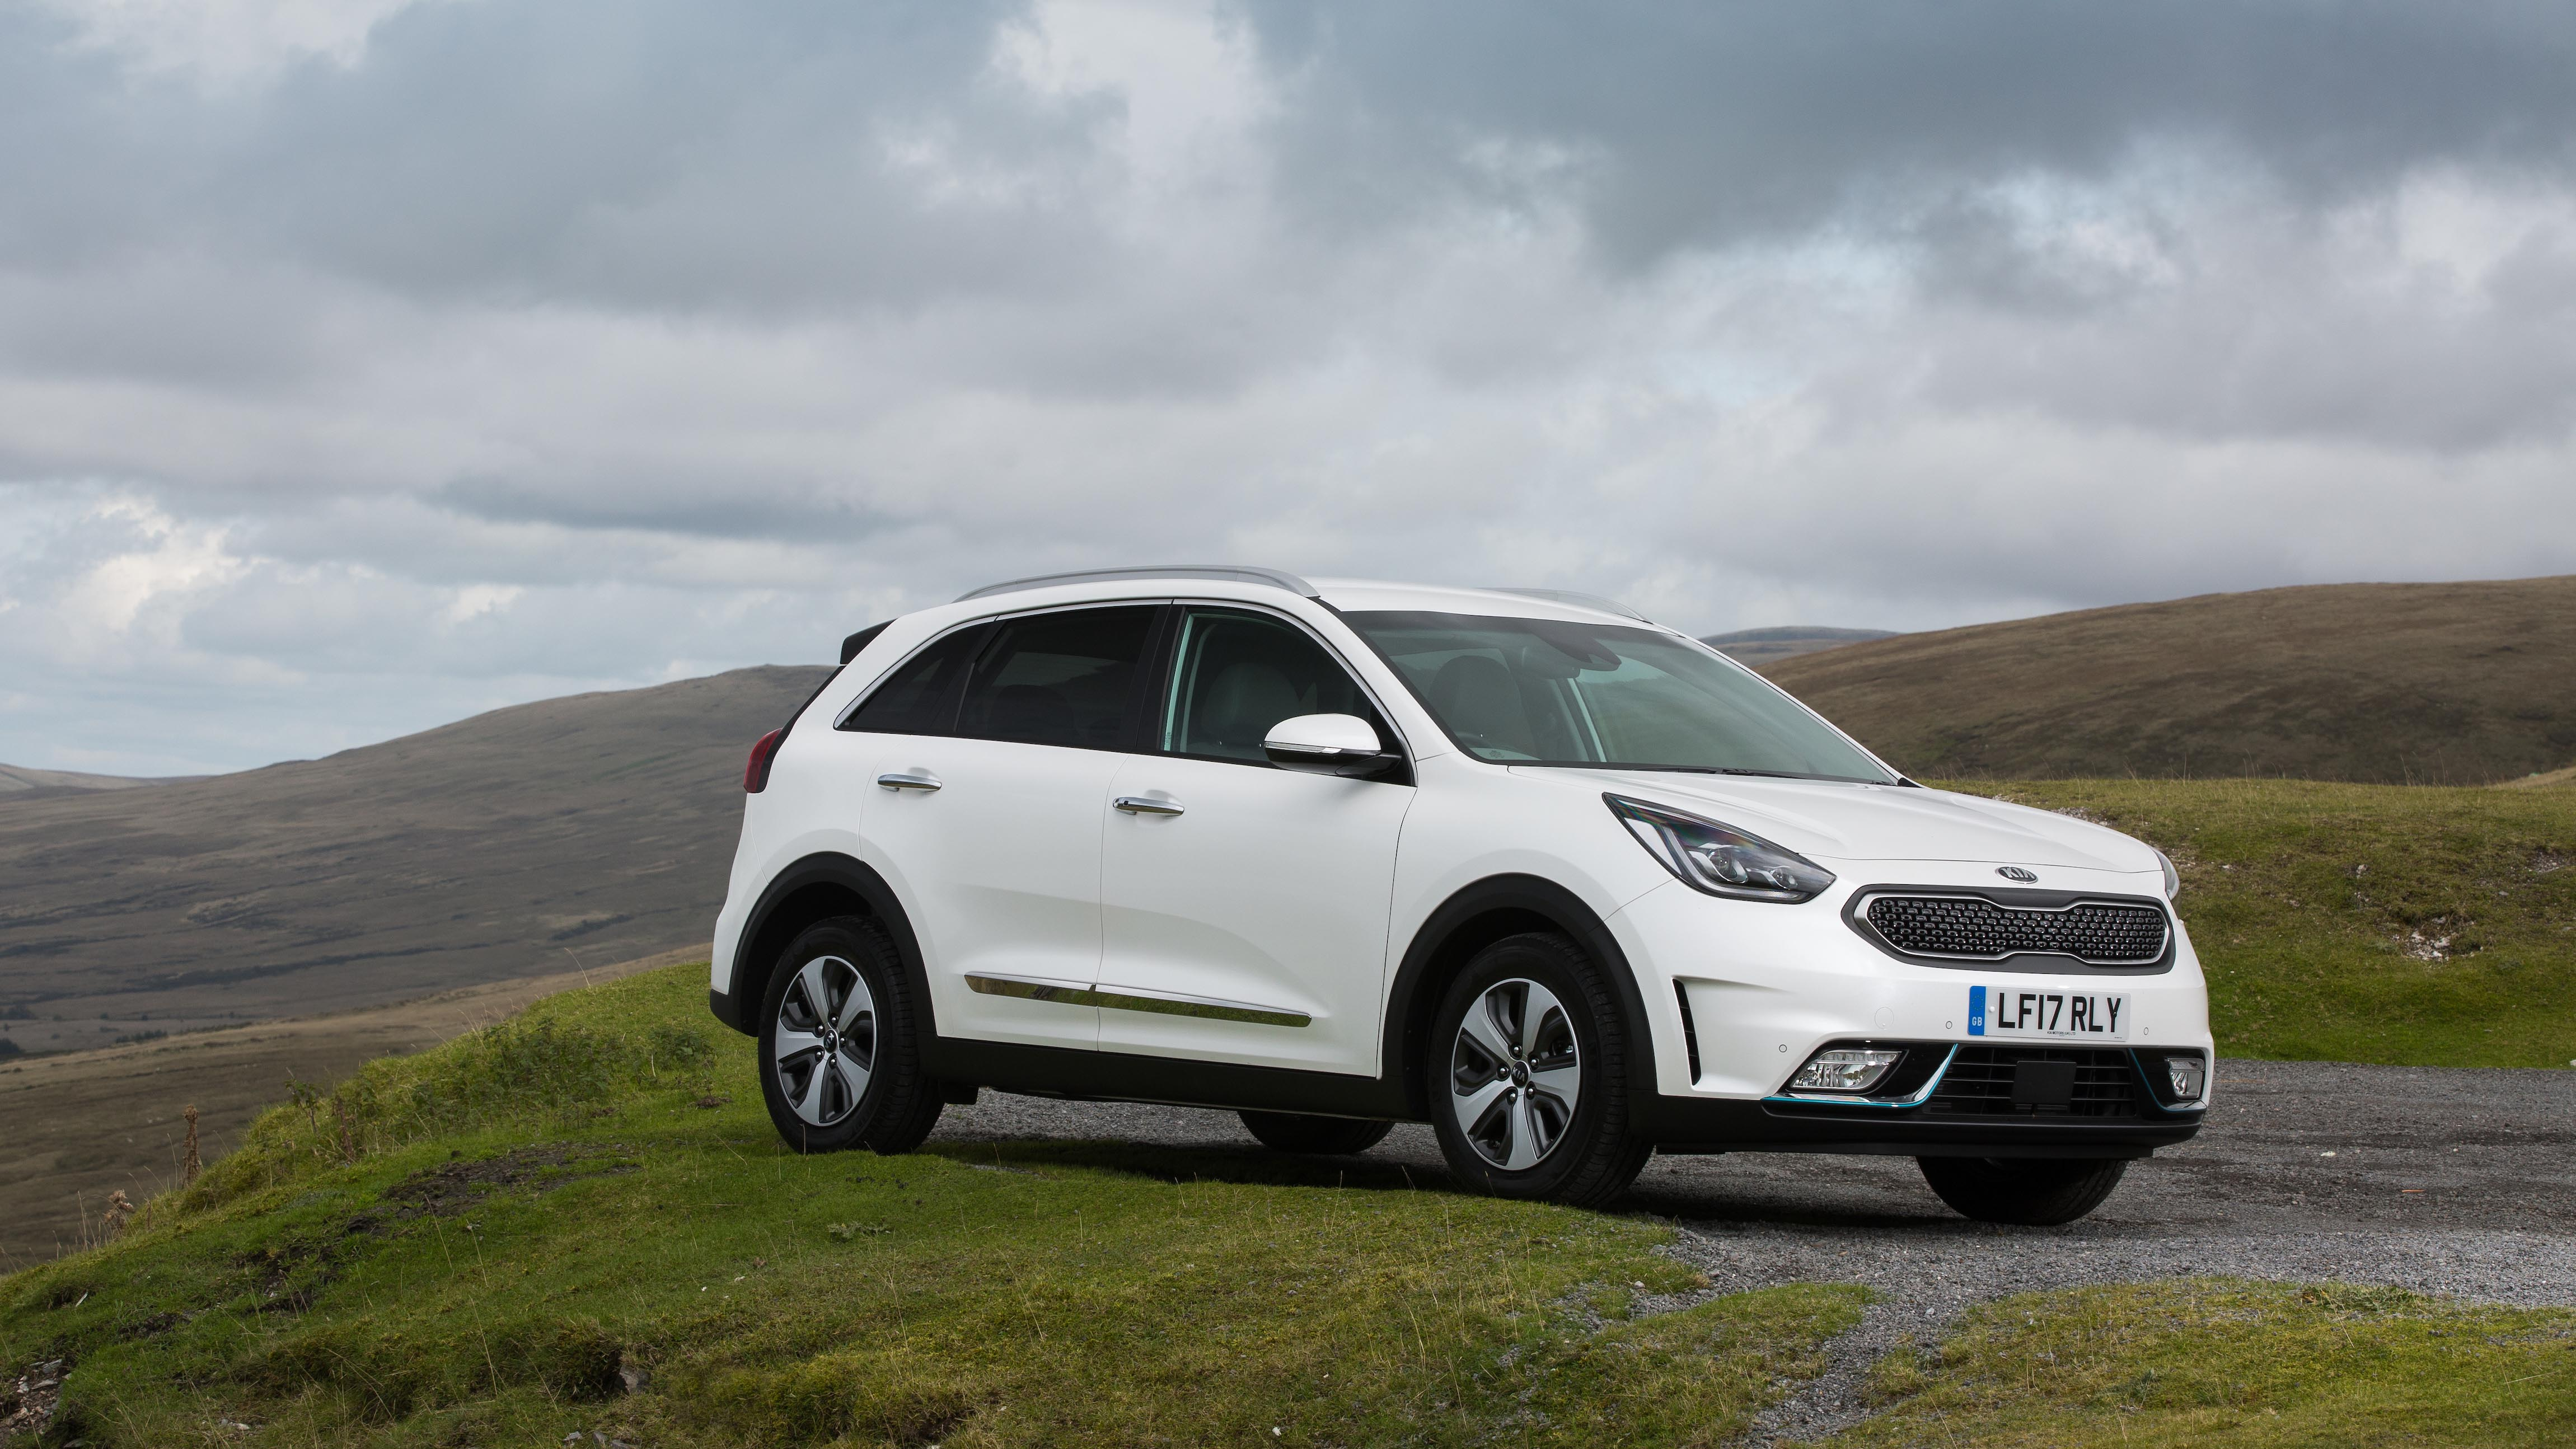 Kia Niro Review And Buying Guide Best Deals And Prices Buyacar